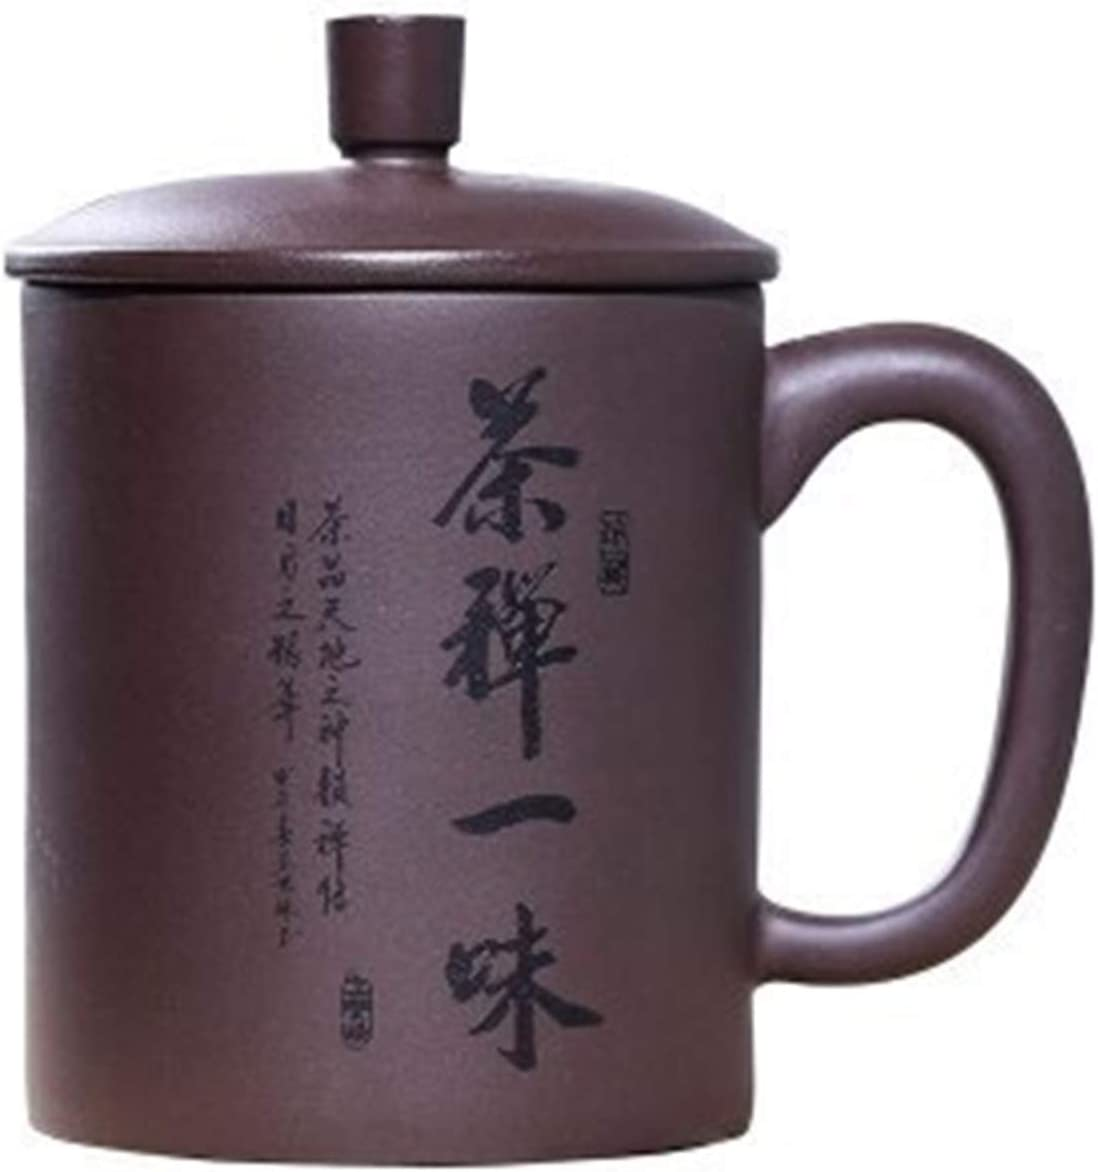 Tea Mug 360ml Yixing Purple 70% OFF Outlet Luxury Clay Bles Cup Office Teacup Cups